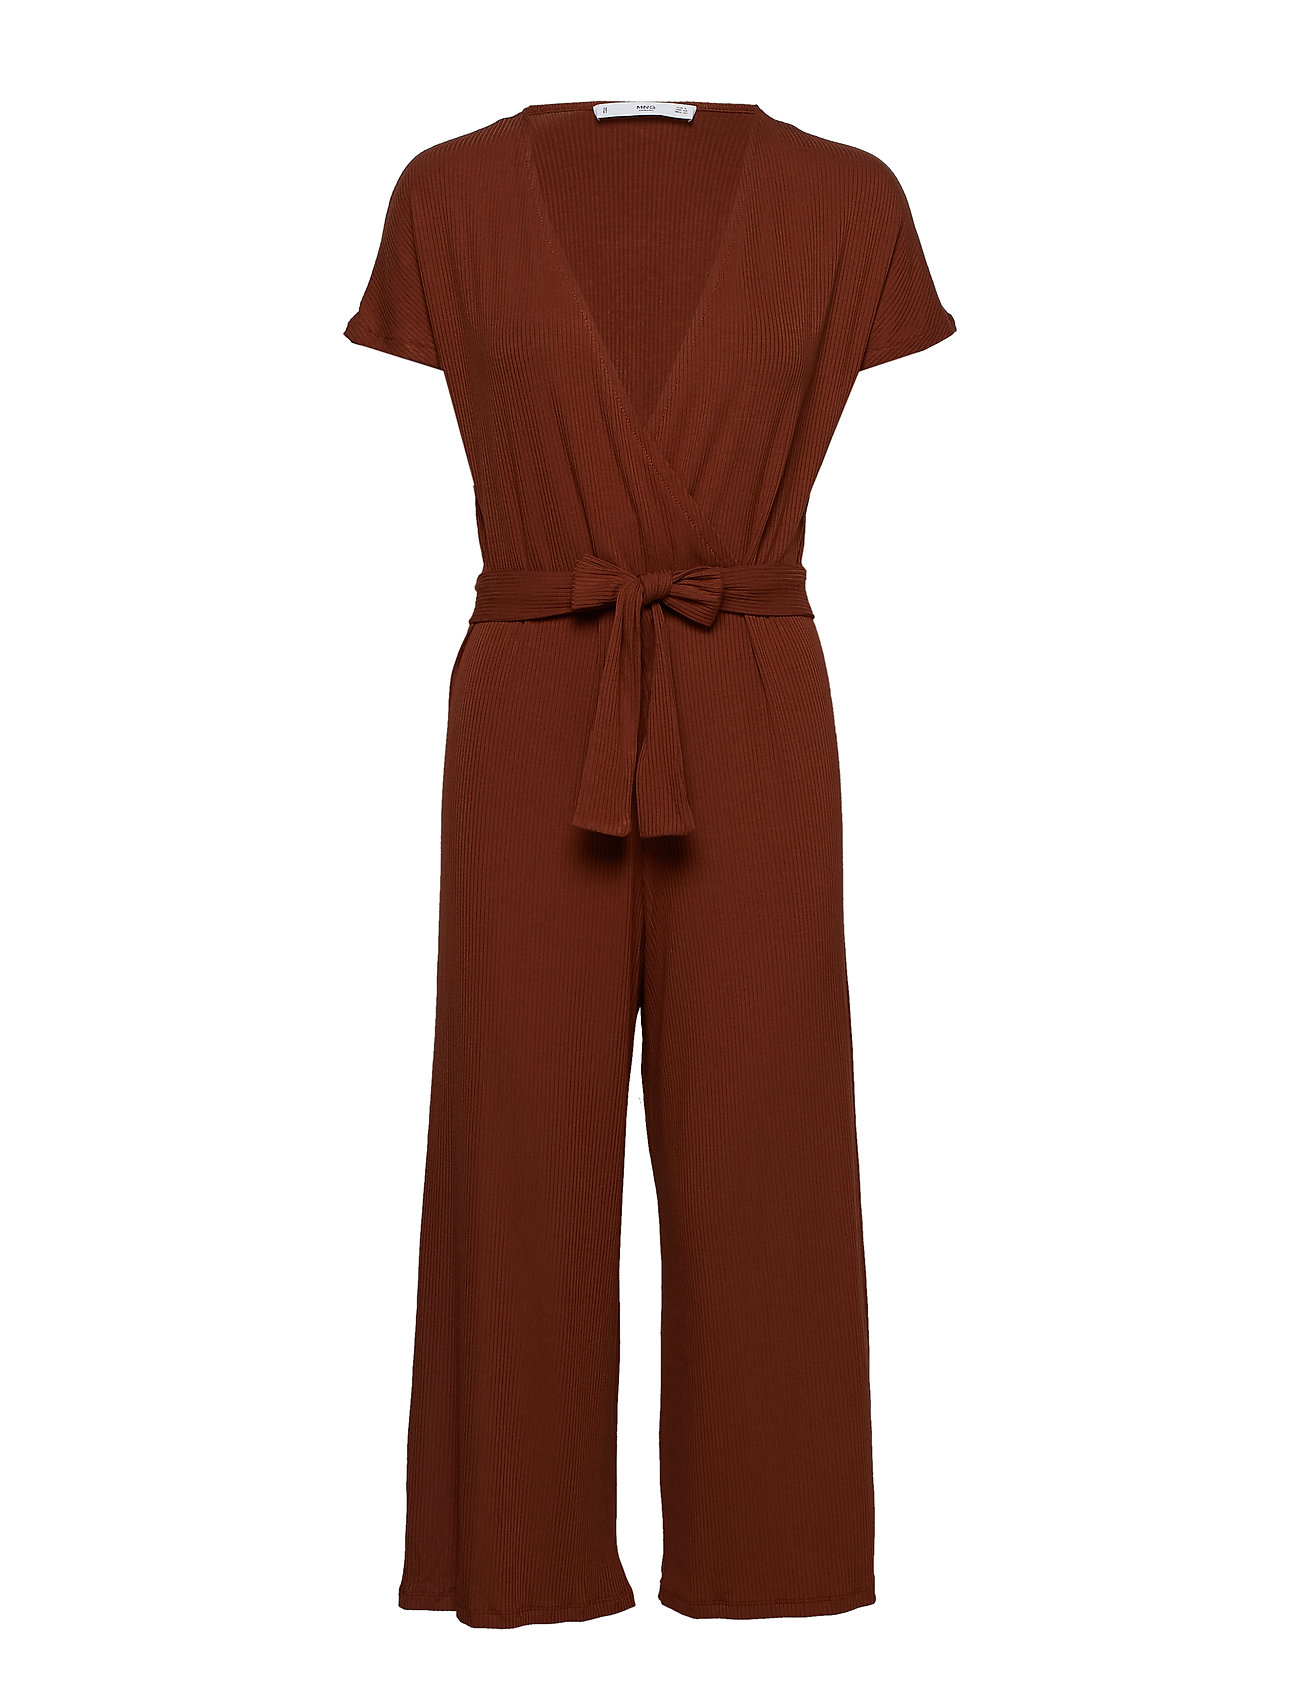 Mango Ribbed knit juimpsuit Jumpsuits